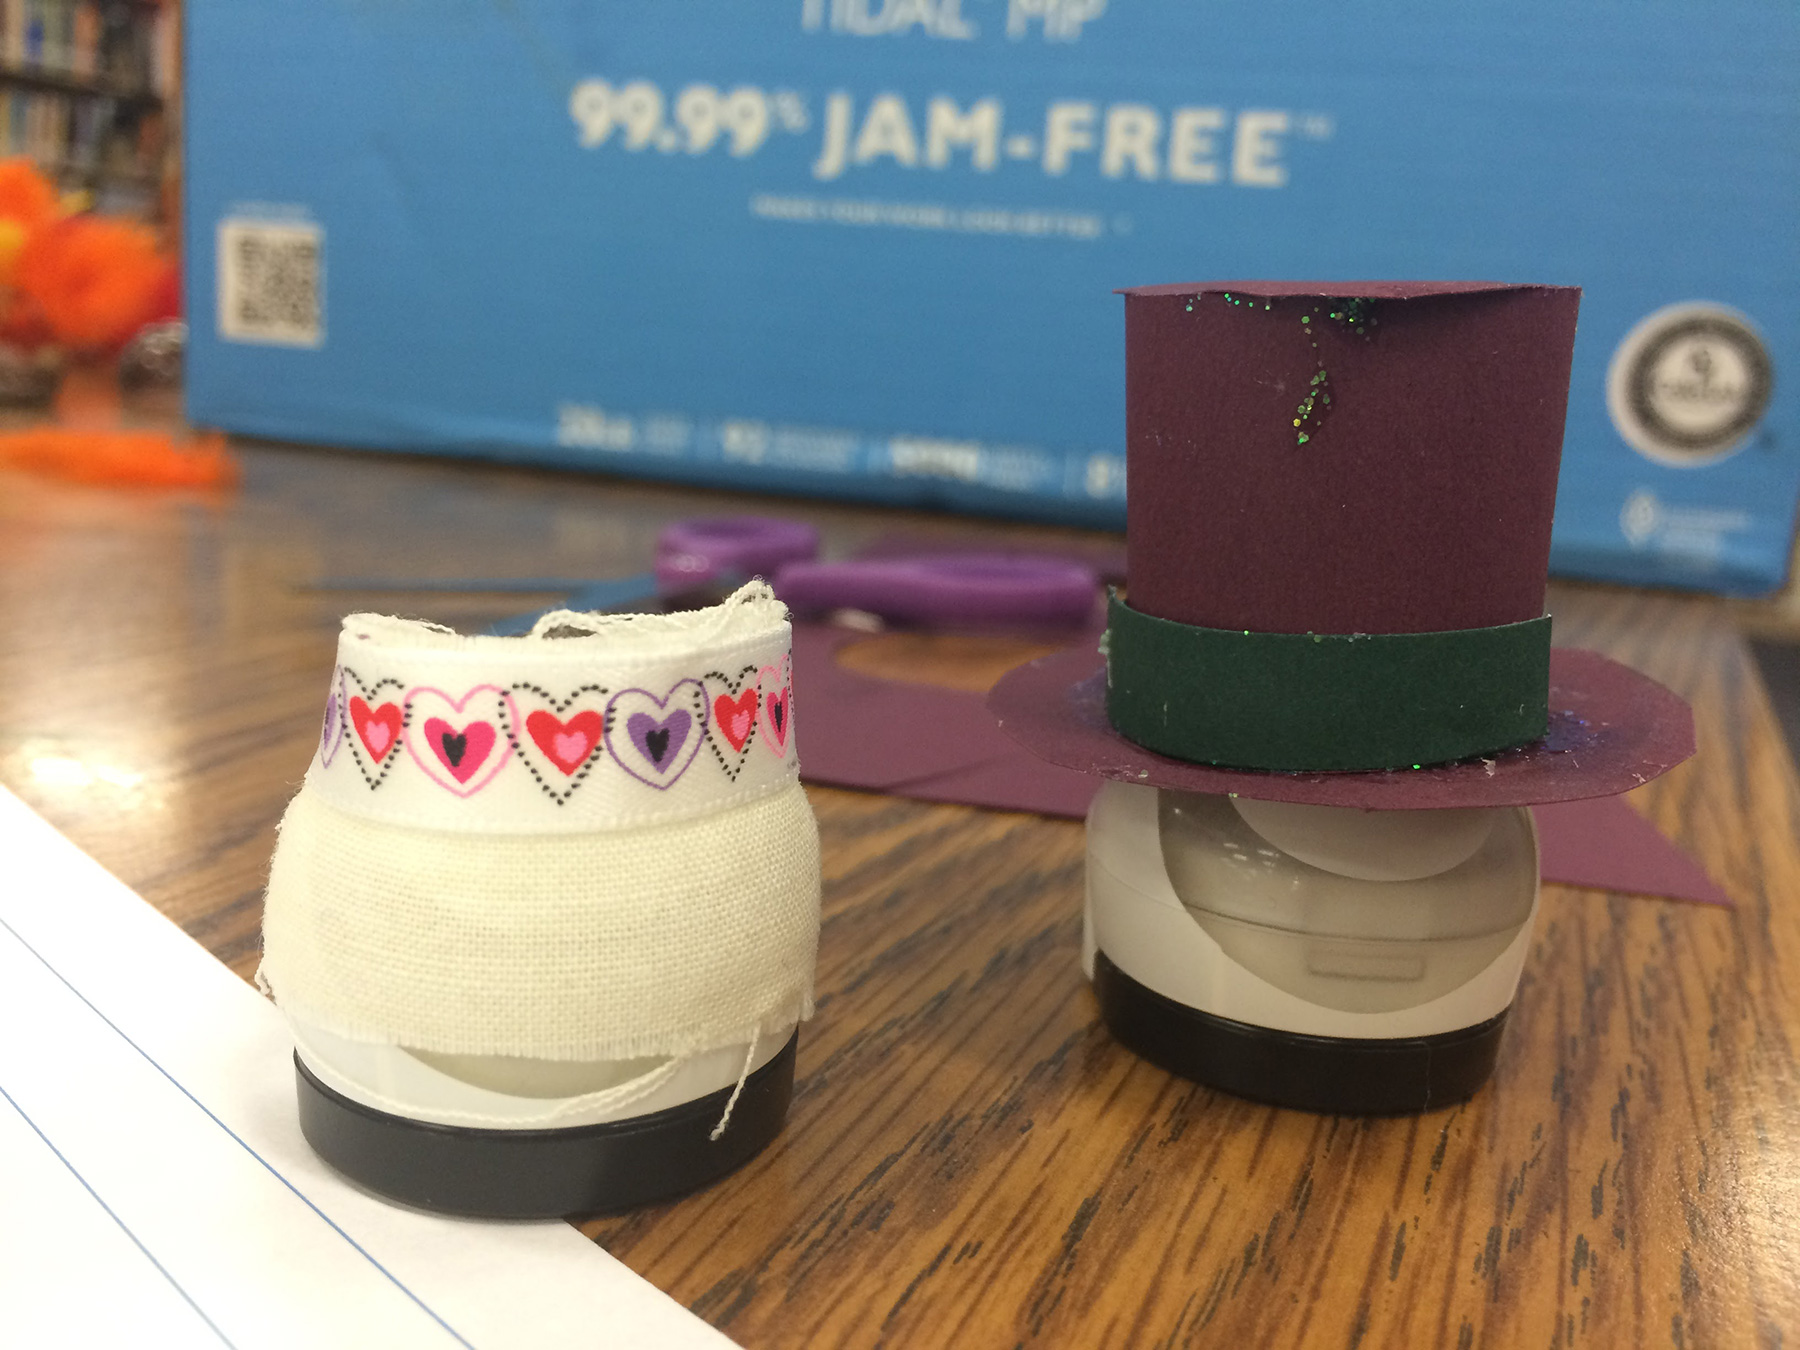 Ozobots dressed for their wedding in a student's original story.